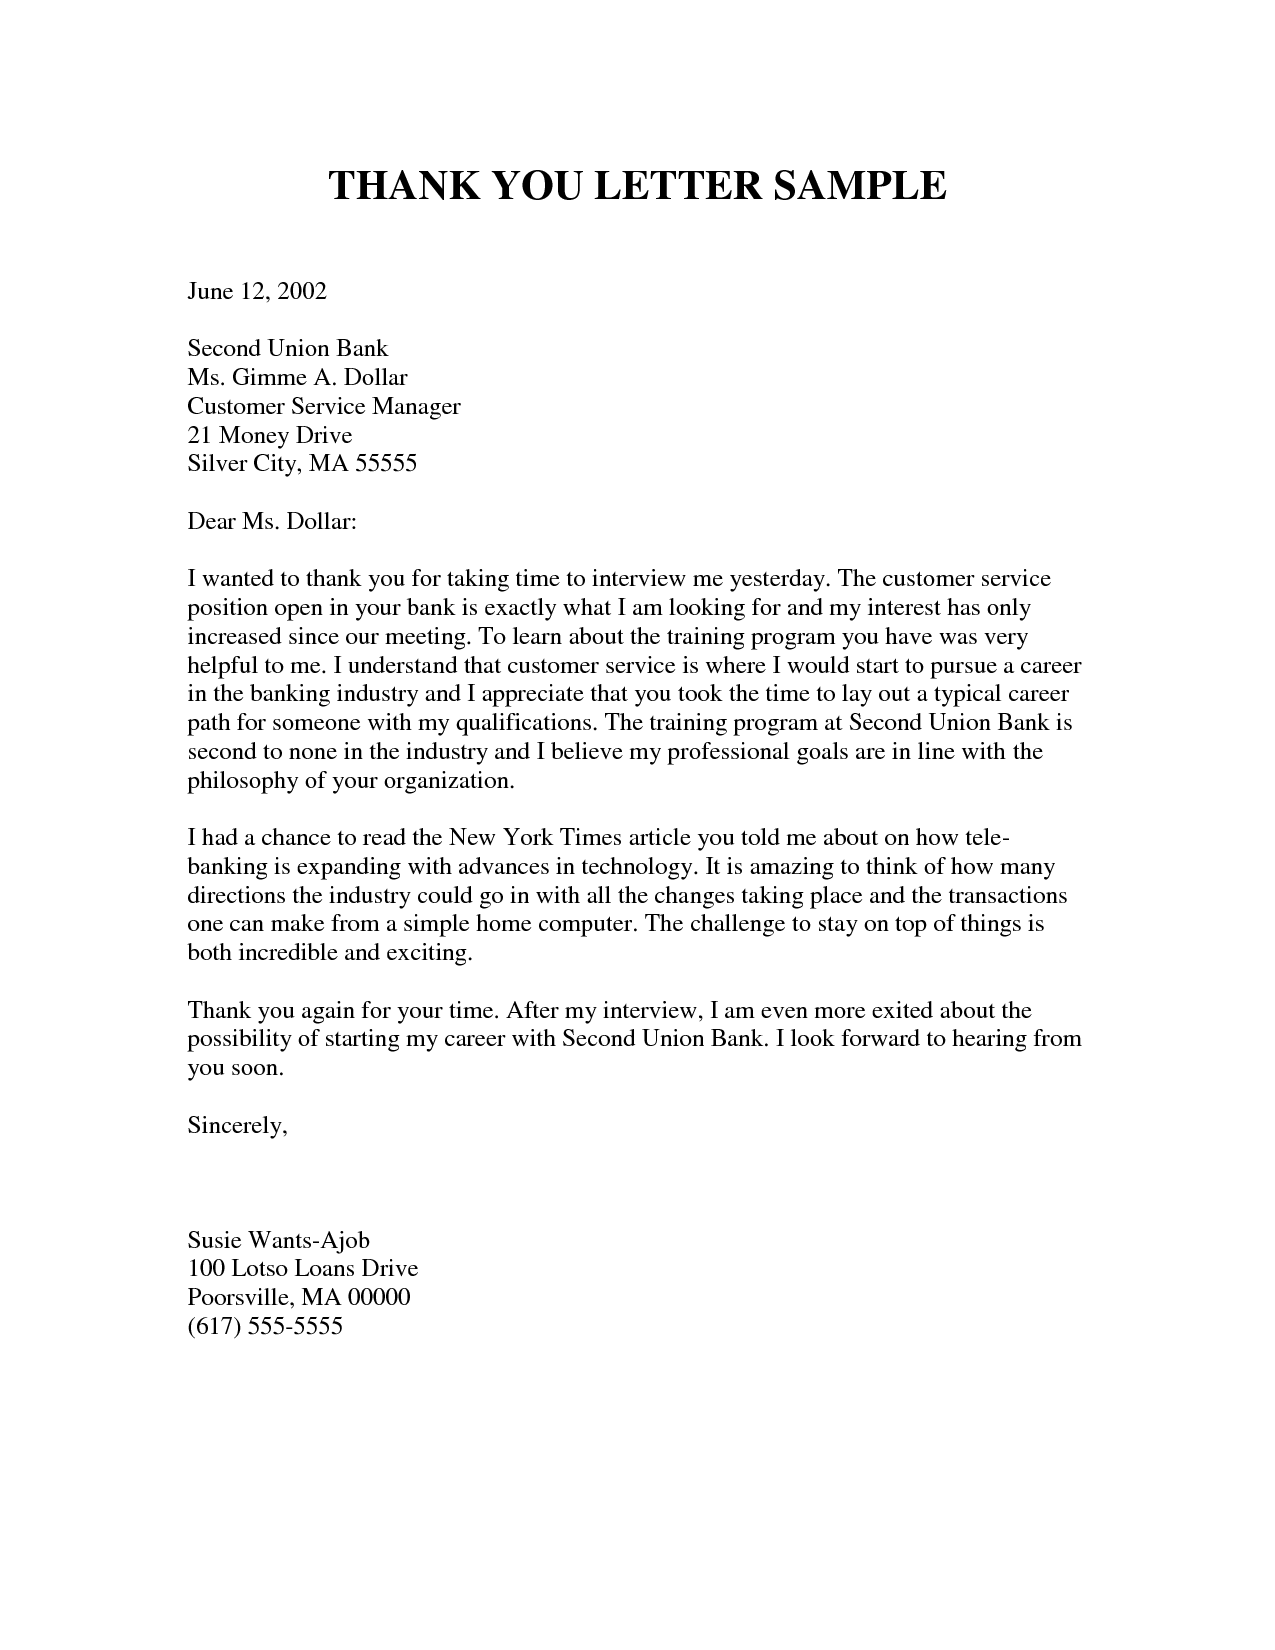 Thanking Letter Format Best Template Collection Thank You Letters